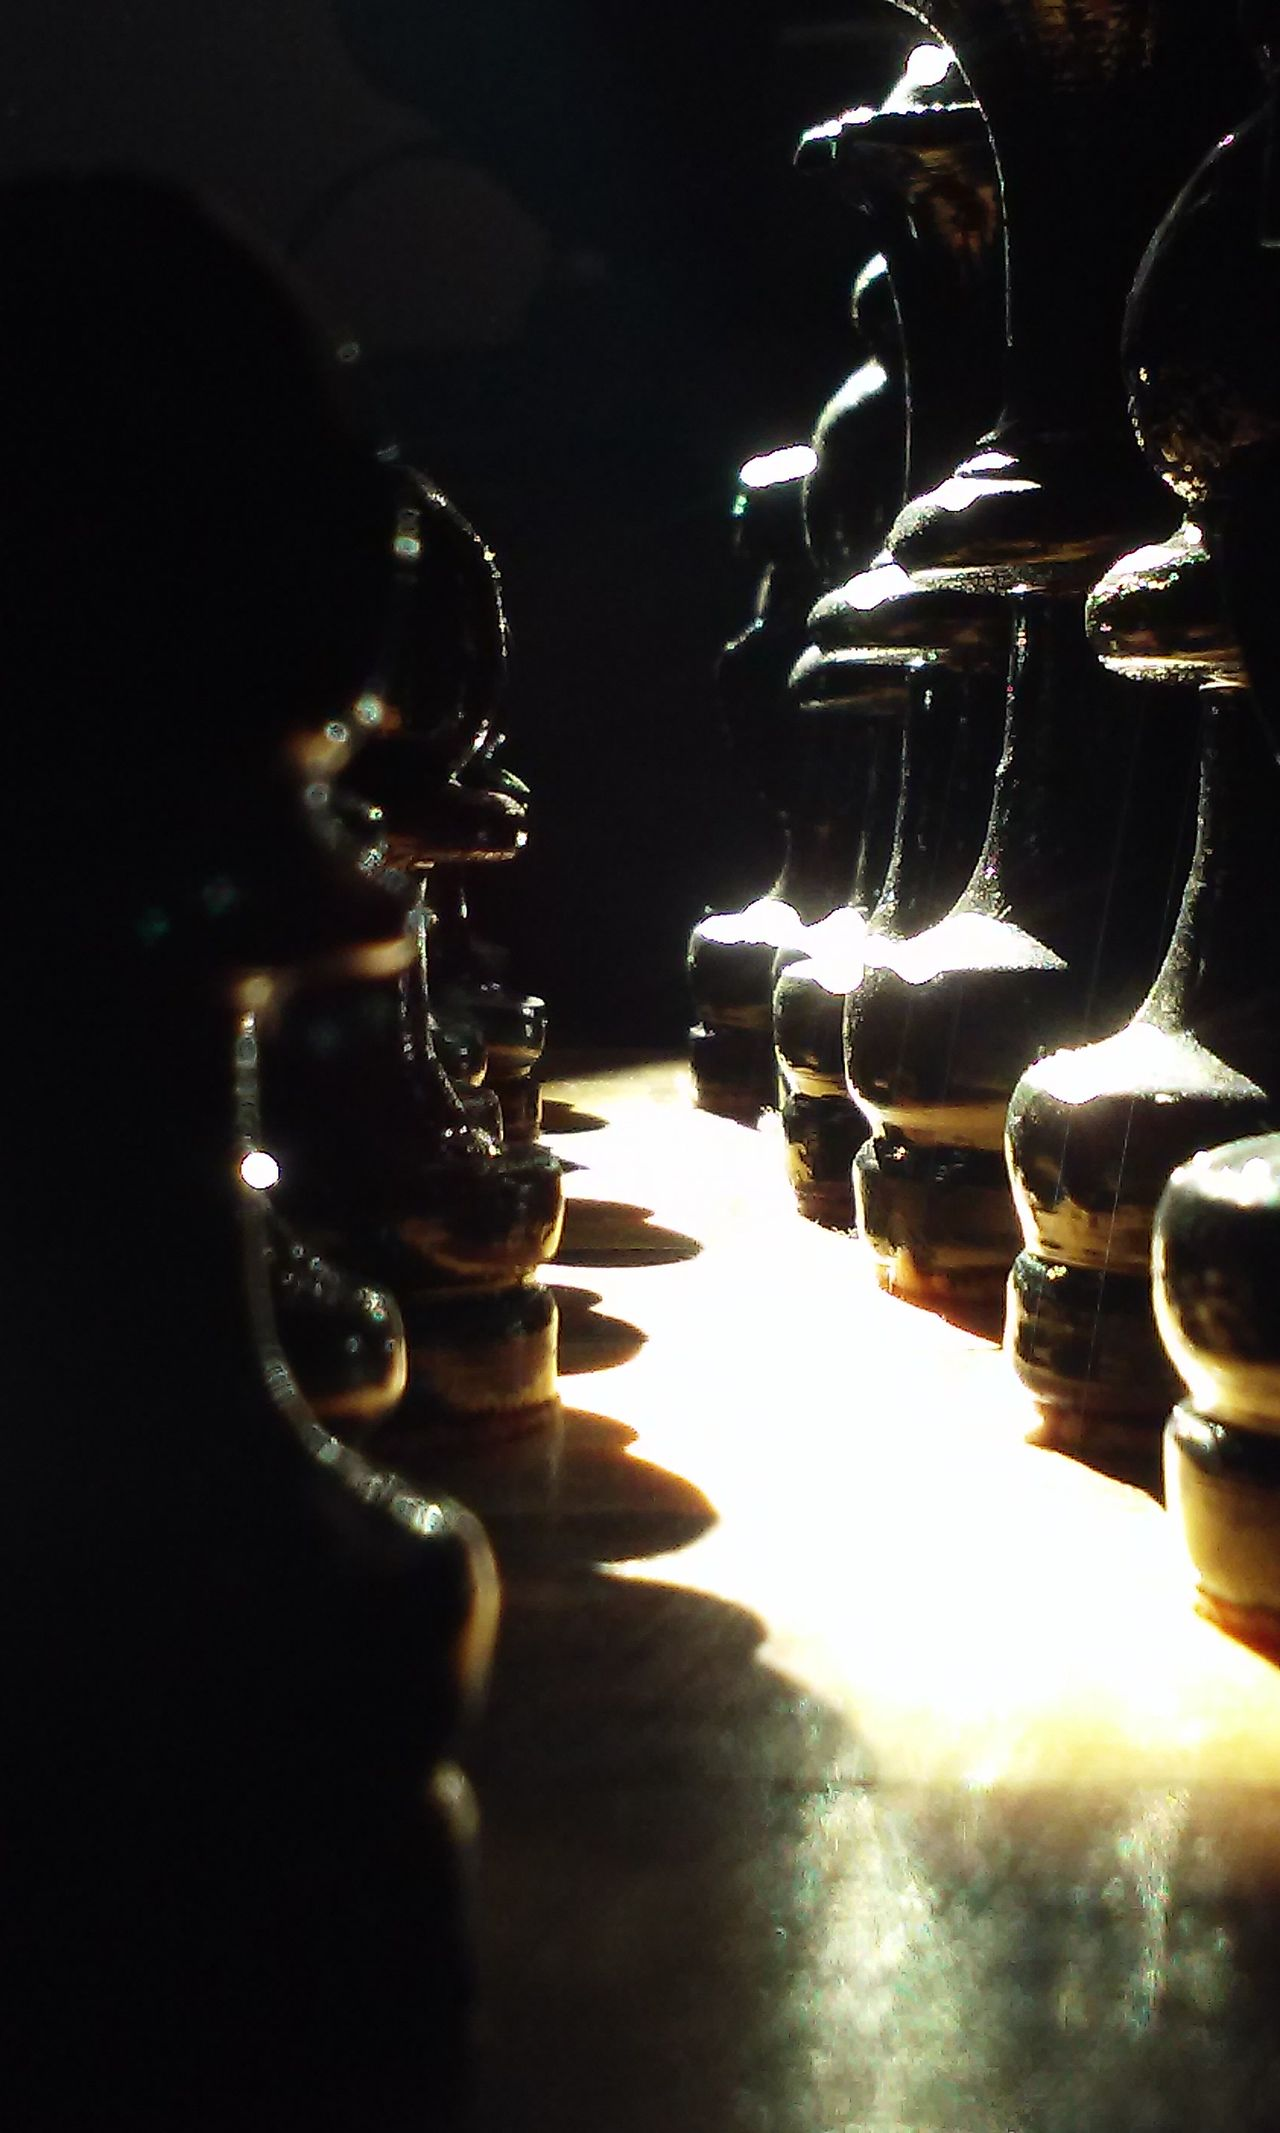 Maximum Closeness Black Chesspieces Chess Board Upclose And Personal Light And Shadow Sunlight Sunshine